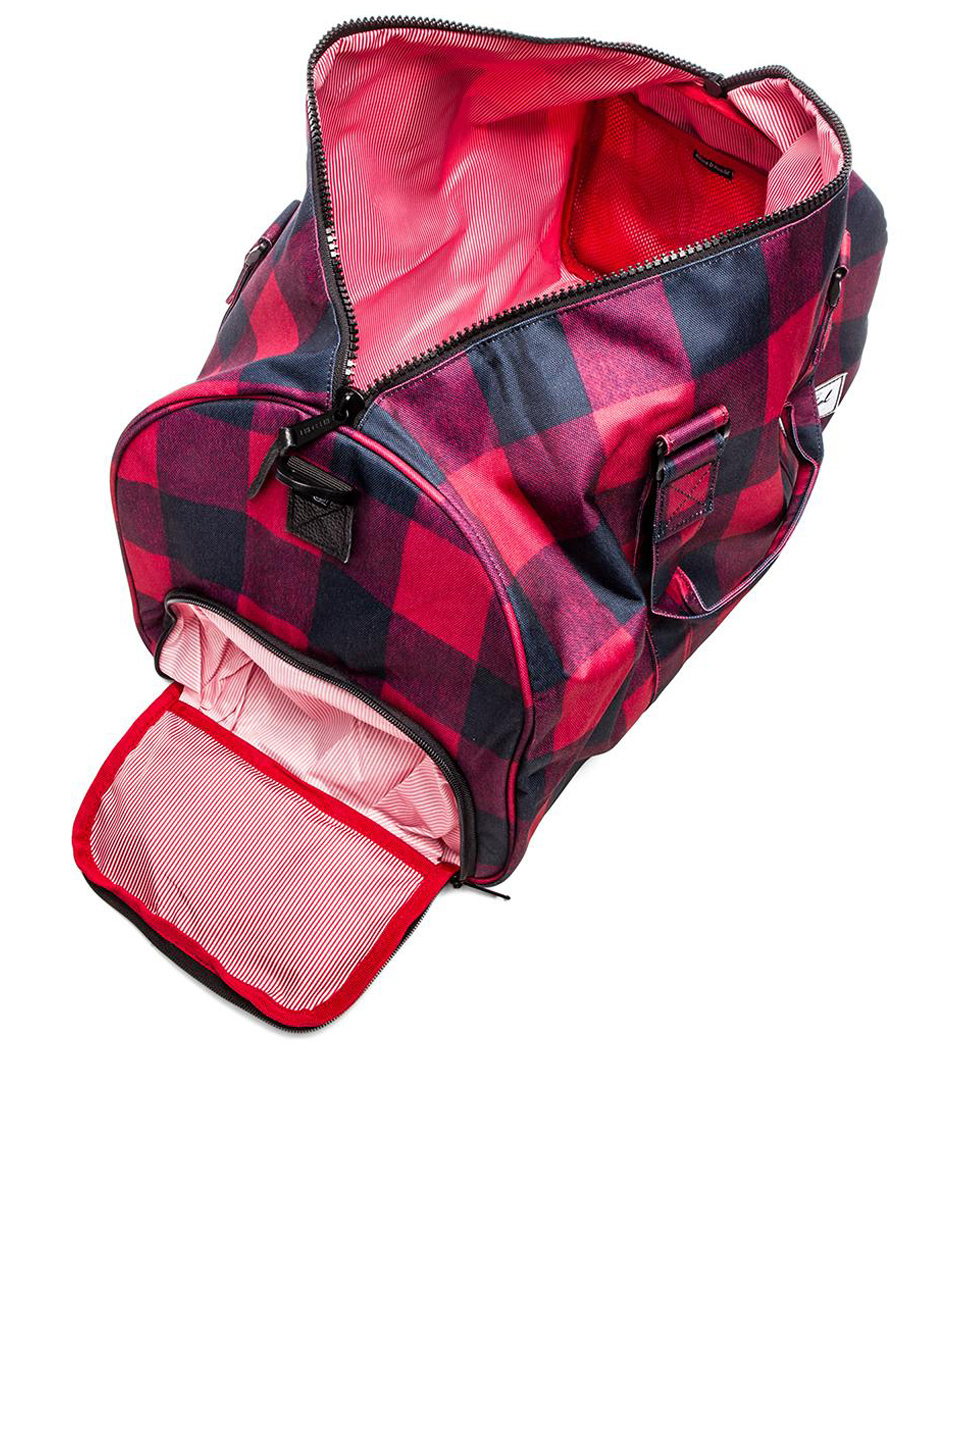 Lyst - Herschel Supply Co. Novel Duffle in Red for Men c83962a3ad3fc